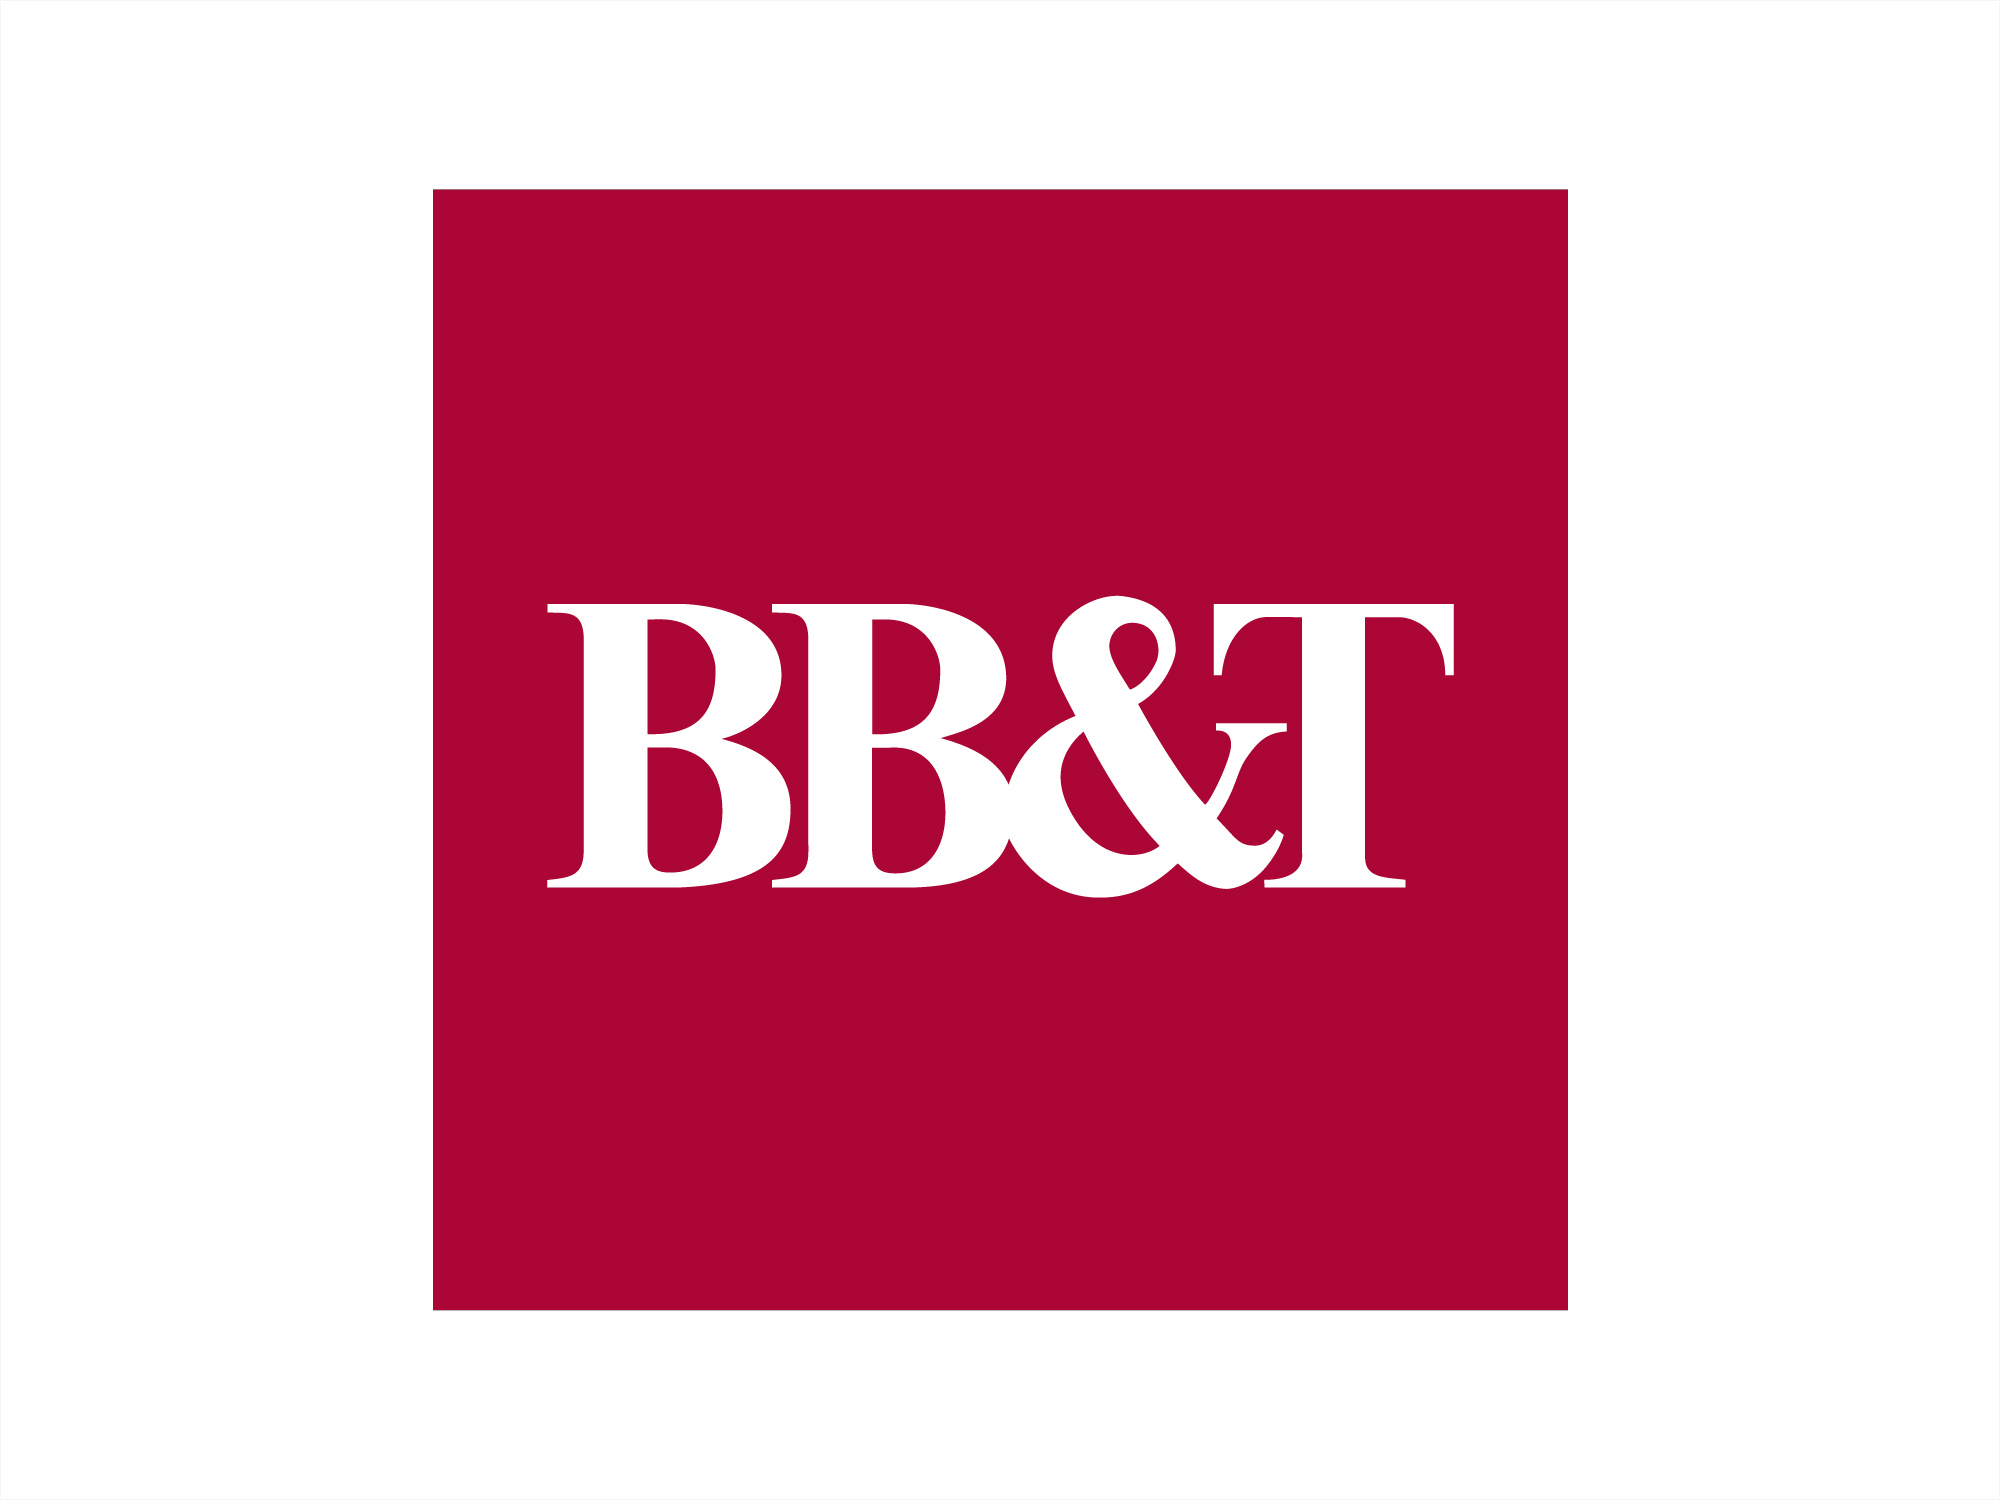 Ongoing BB&T outages locks customers out of their bank accounts